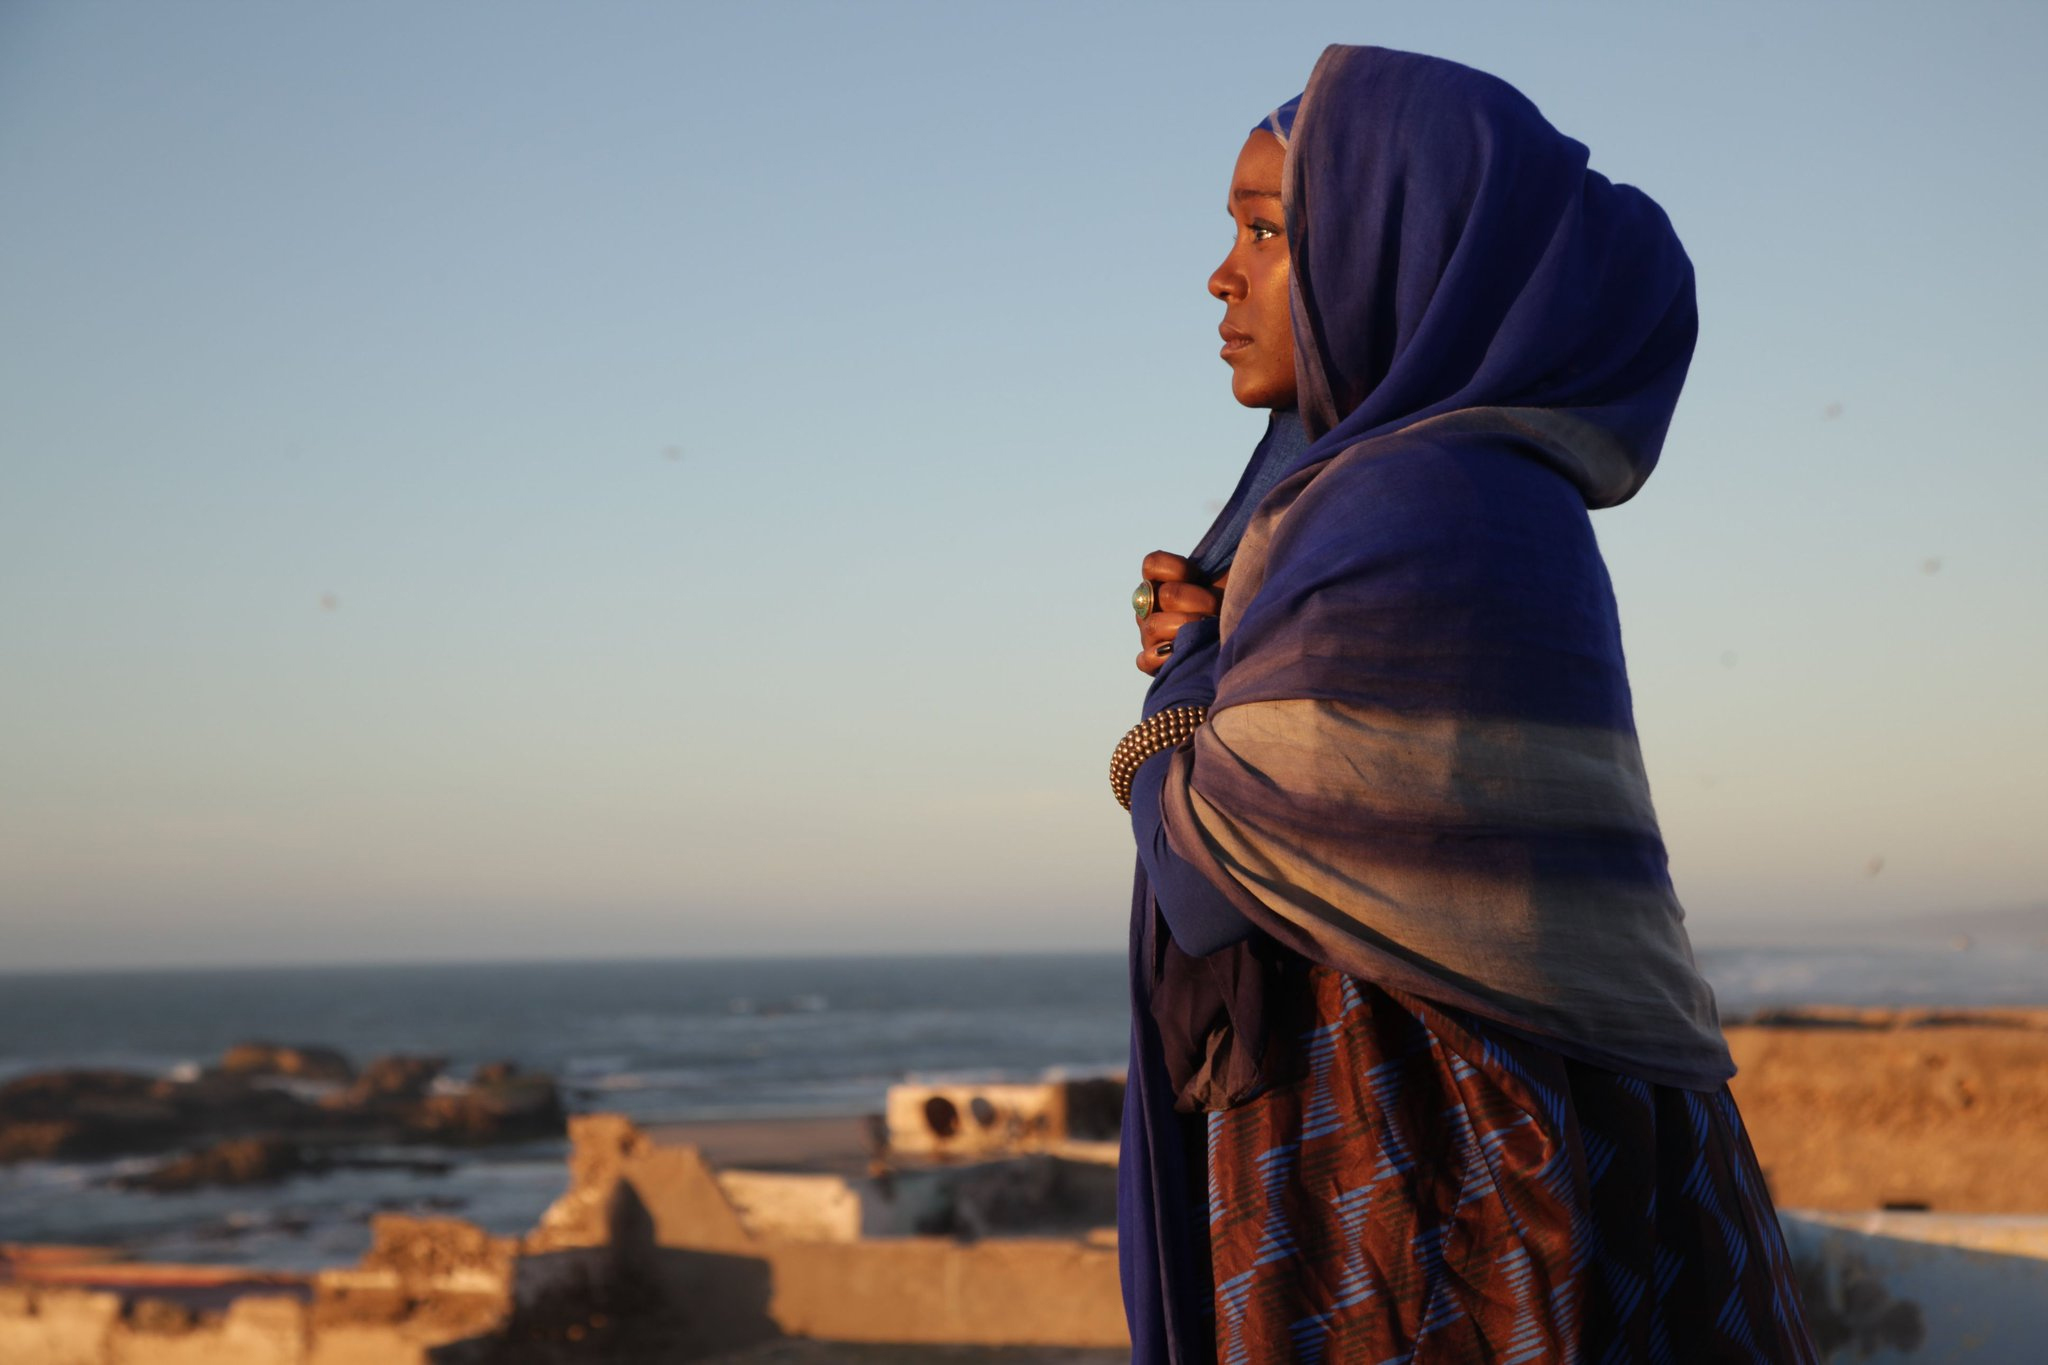 'A Girl from Mogadishu' to Premiere at Edinburgh International Film Festival